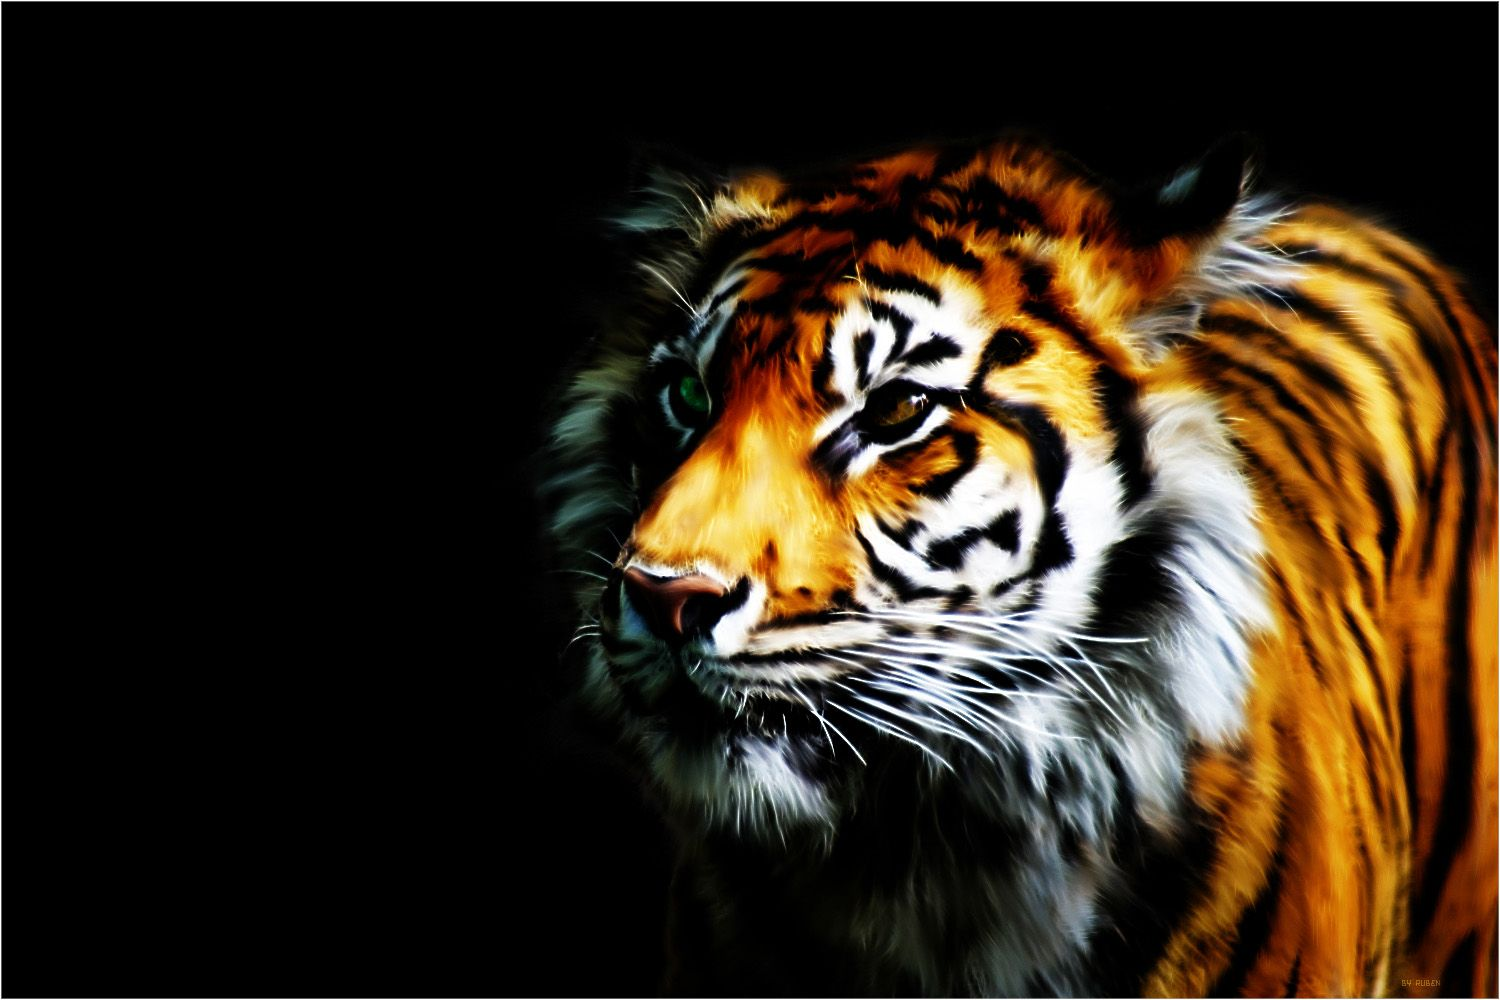 1500x1000 Wallpaper Tiger Collection For Free Download